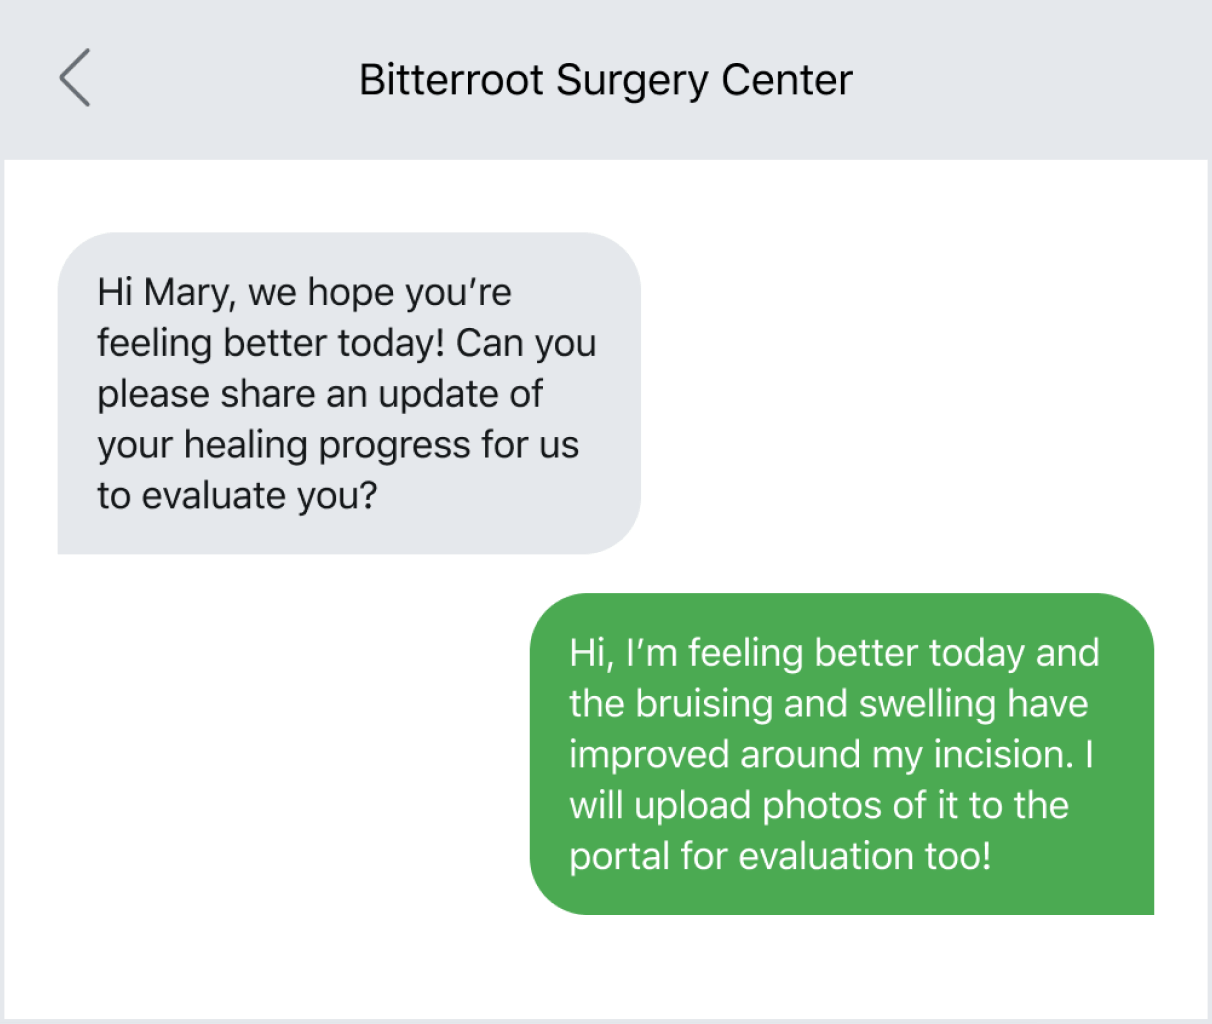 Asking a patient for a health update via text